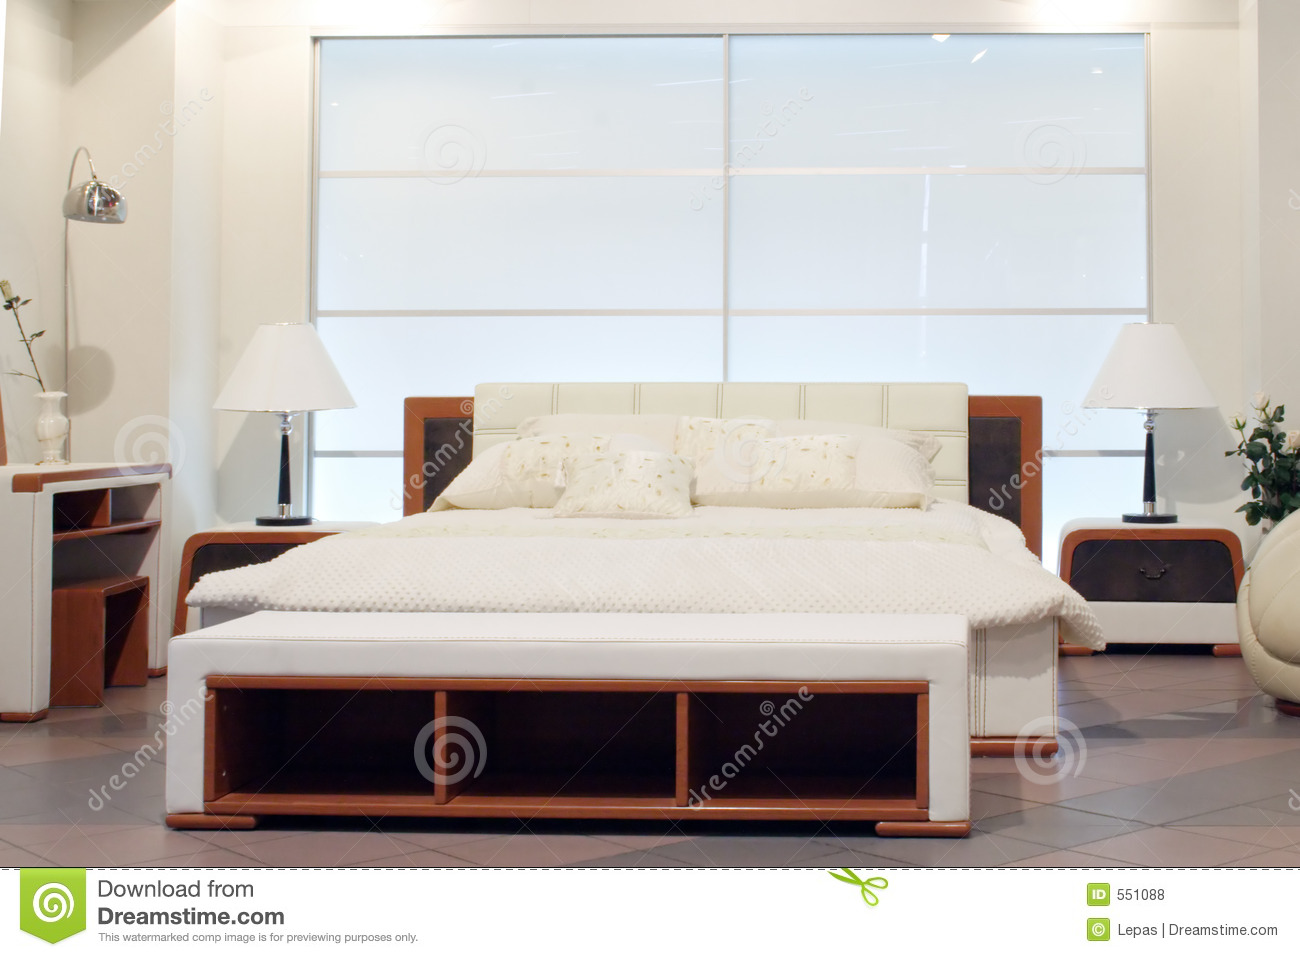 Bedroom royalty free stock photos image 551088 - Image bed room ...